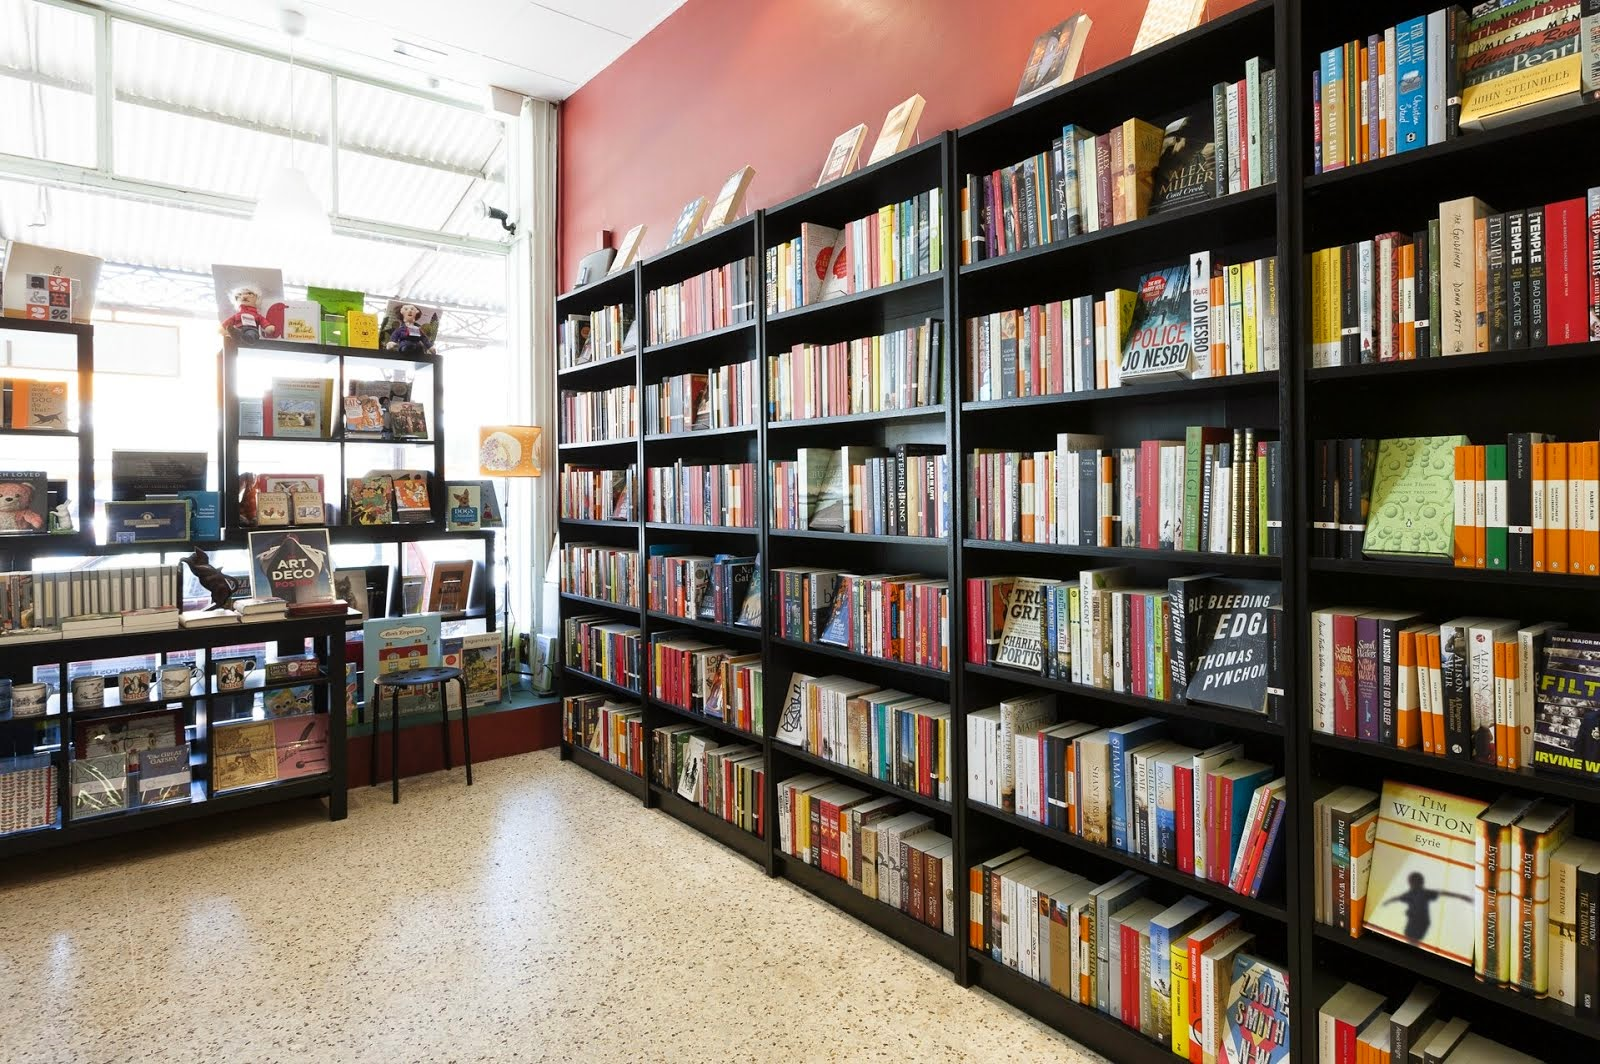 We are a small, local bookstore located in the heart of North Melbourne